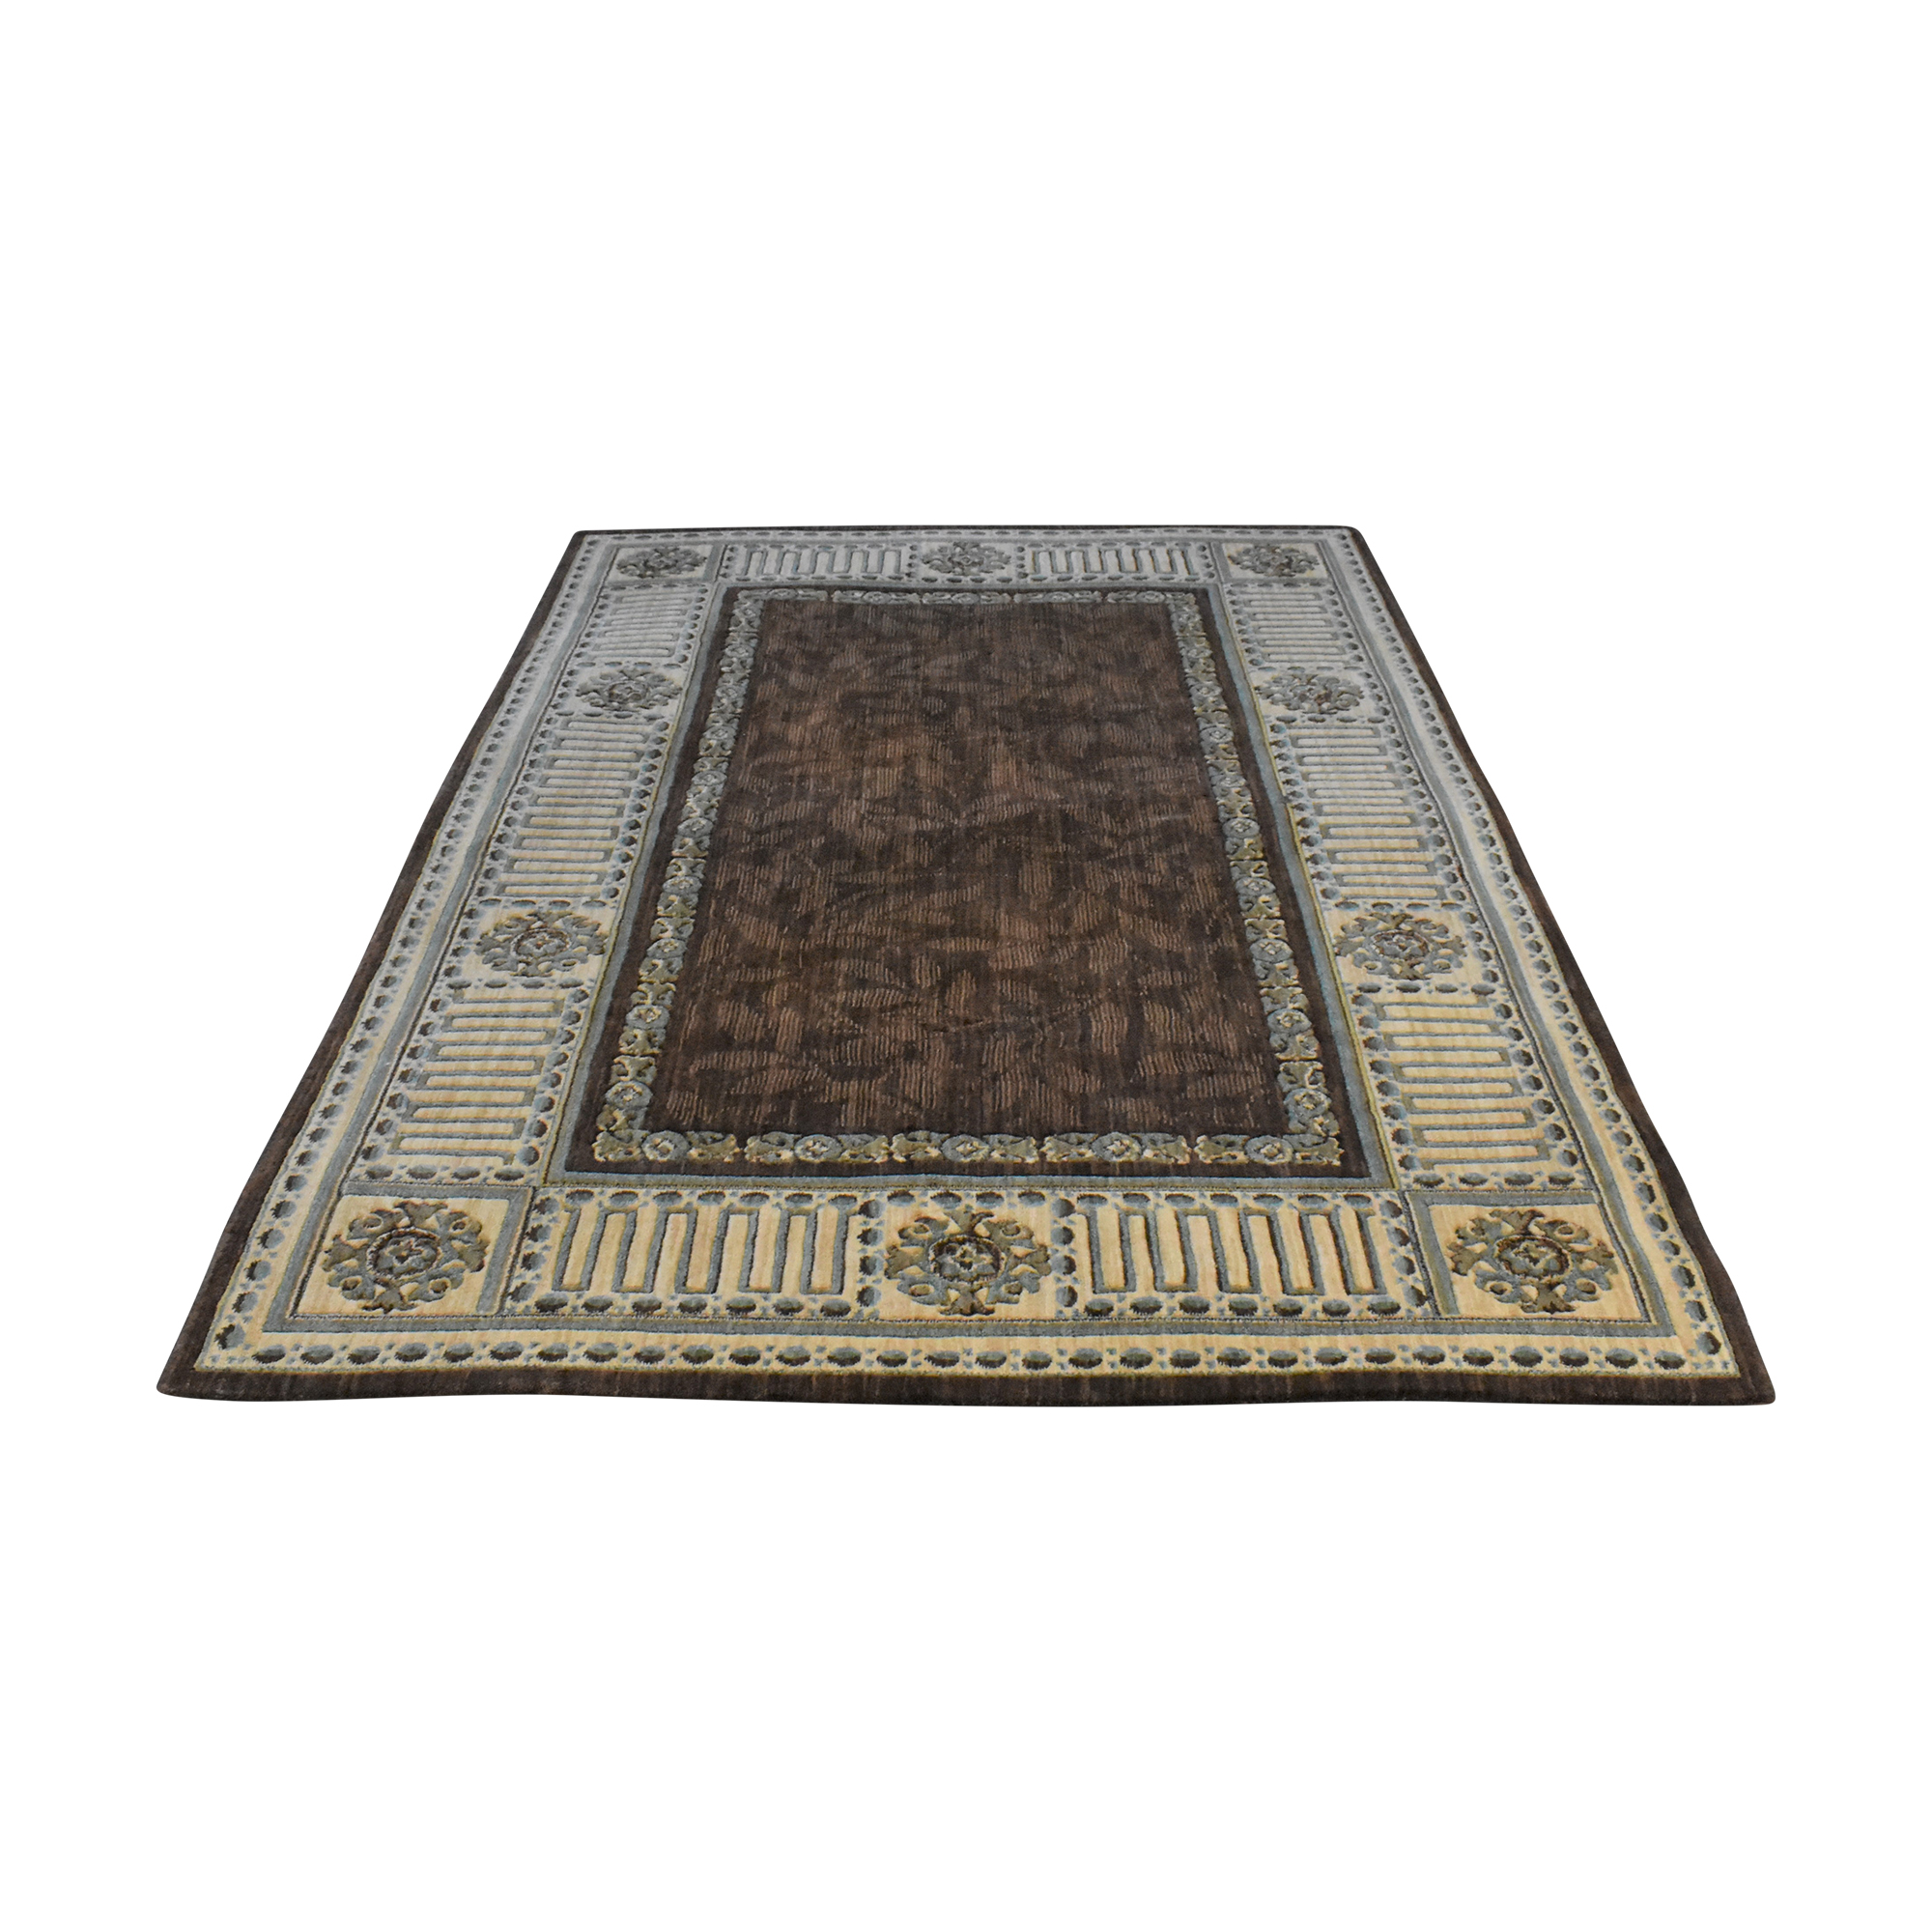 Mediterranean-Style Area Rug for sale